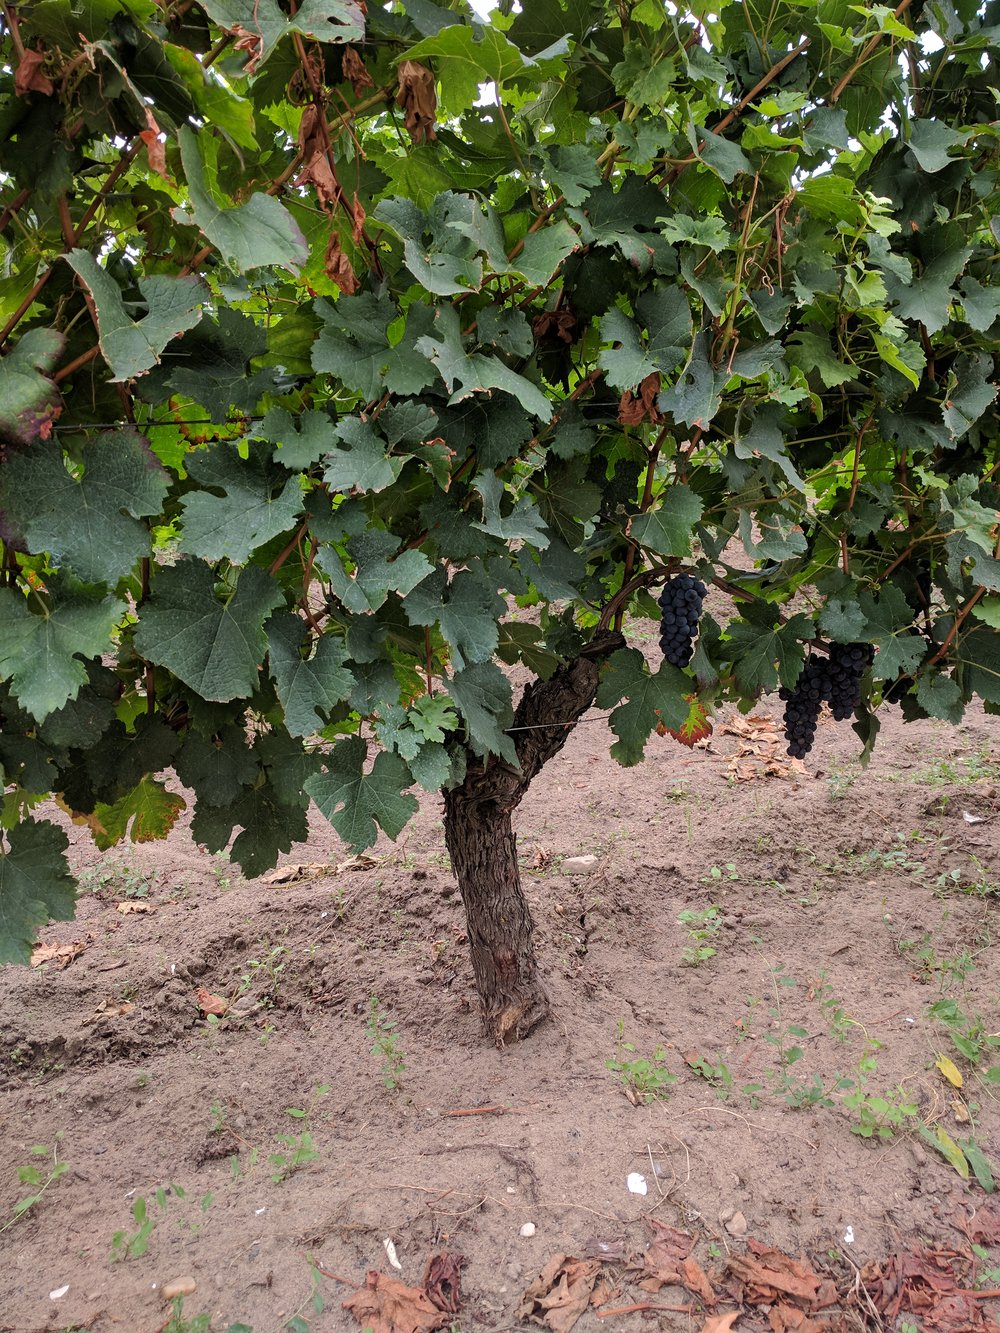 -      Interesting side note on the fickle nature of wine making: This picture was taken at Chateau du Tailhus in Pomerol. The vineyard got hit with a nasty frost this April which kept approximately ninety percent of the fruit from maturing on the vine (nearing harvest each stock only has 1-2 grape bunches)...